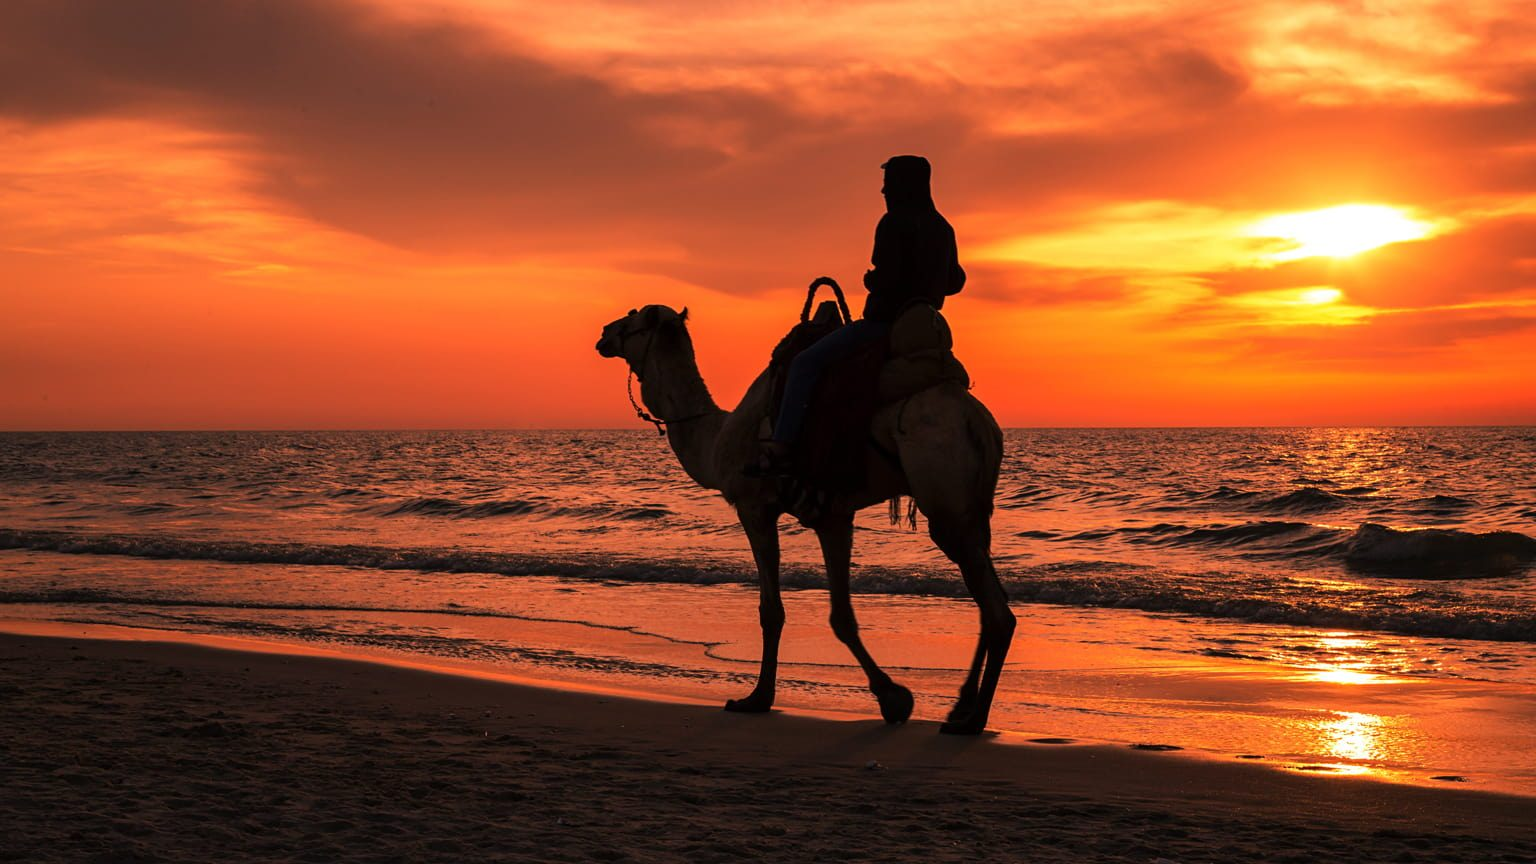 A Silhouette photo of Man Riding Camel At Sunset, Gaza beach